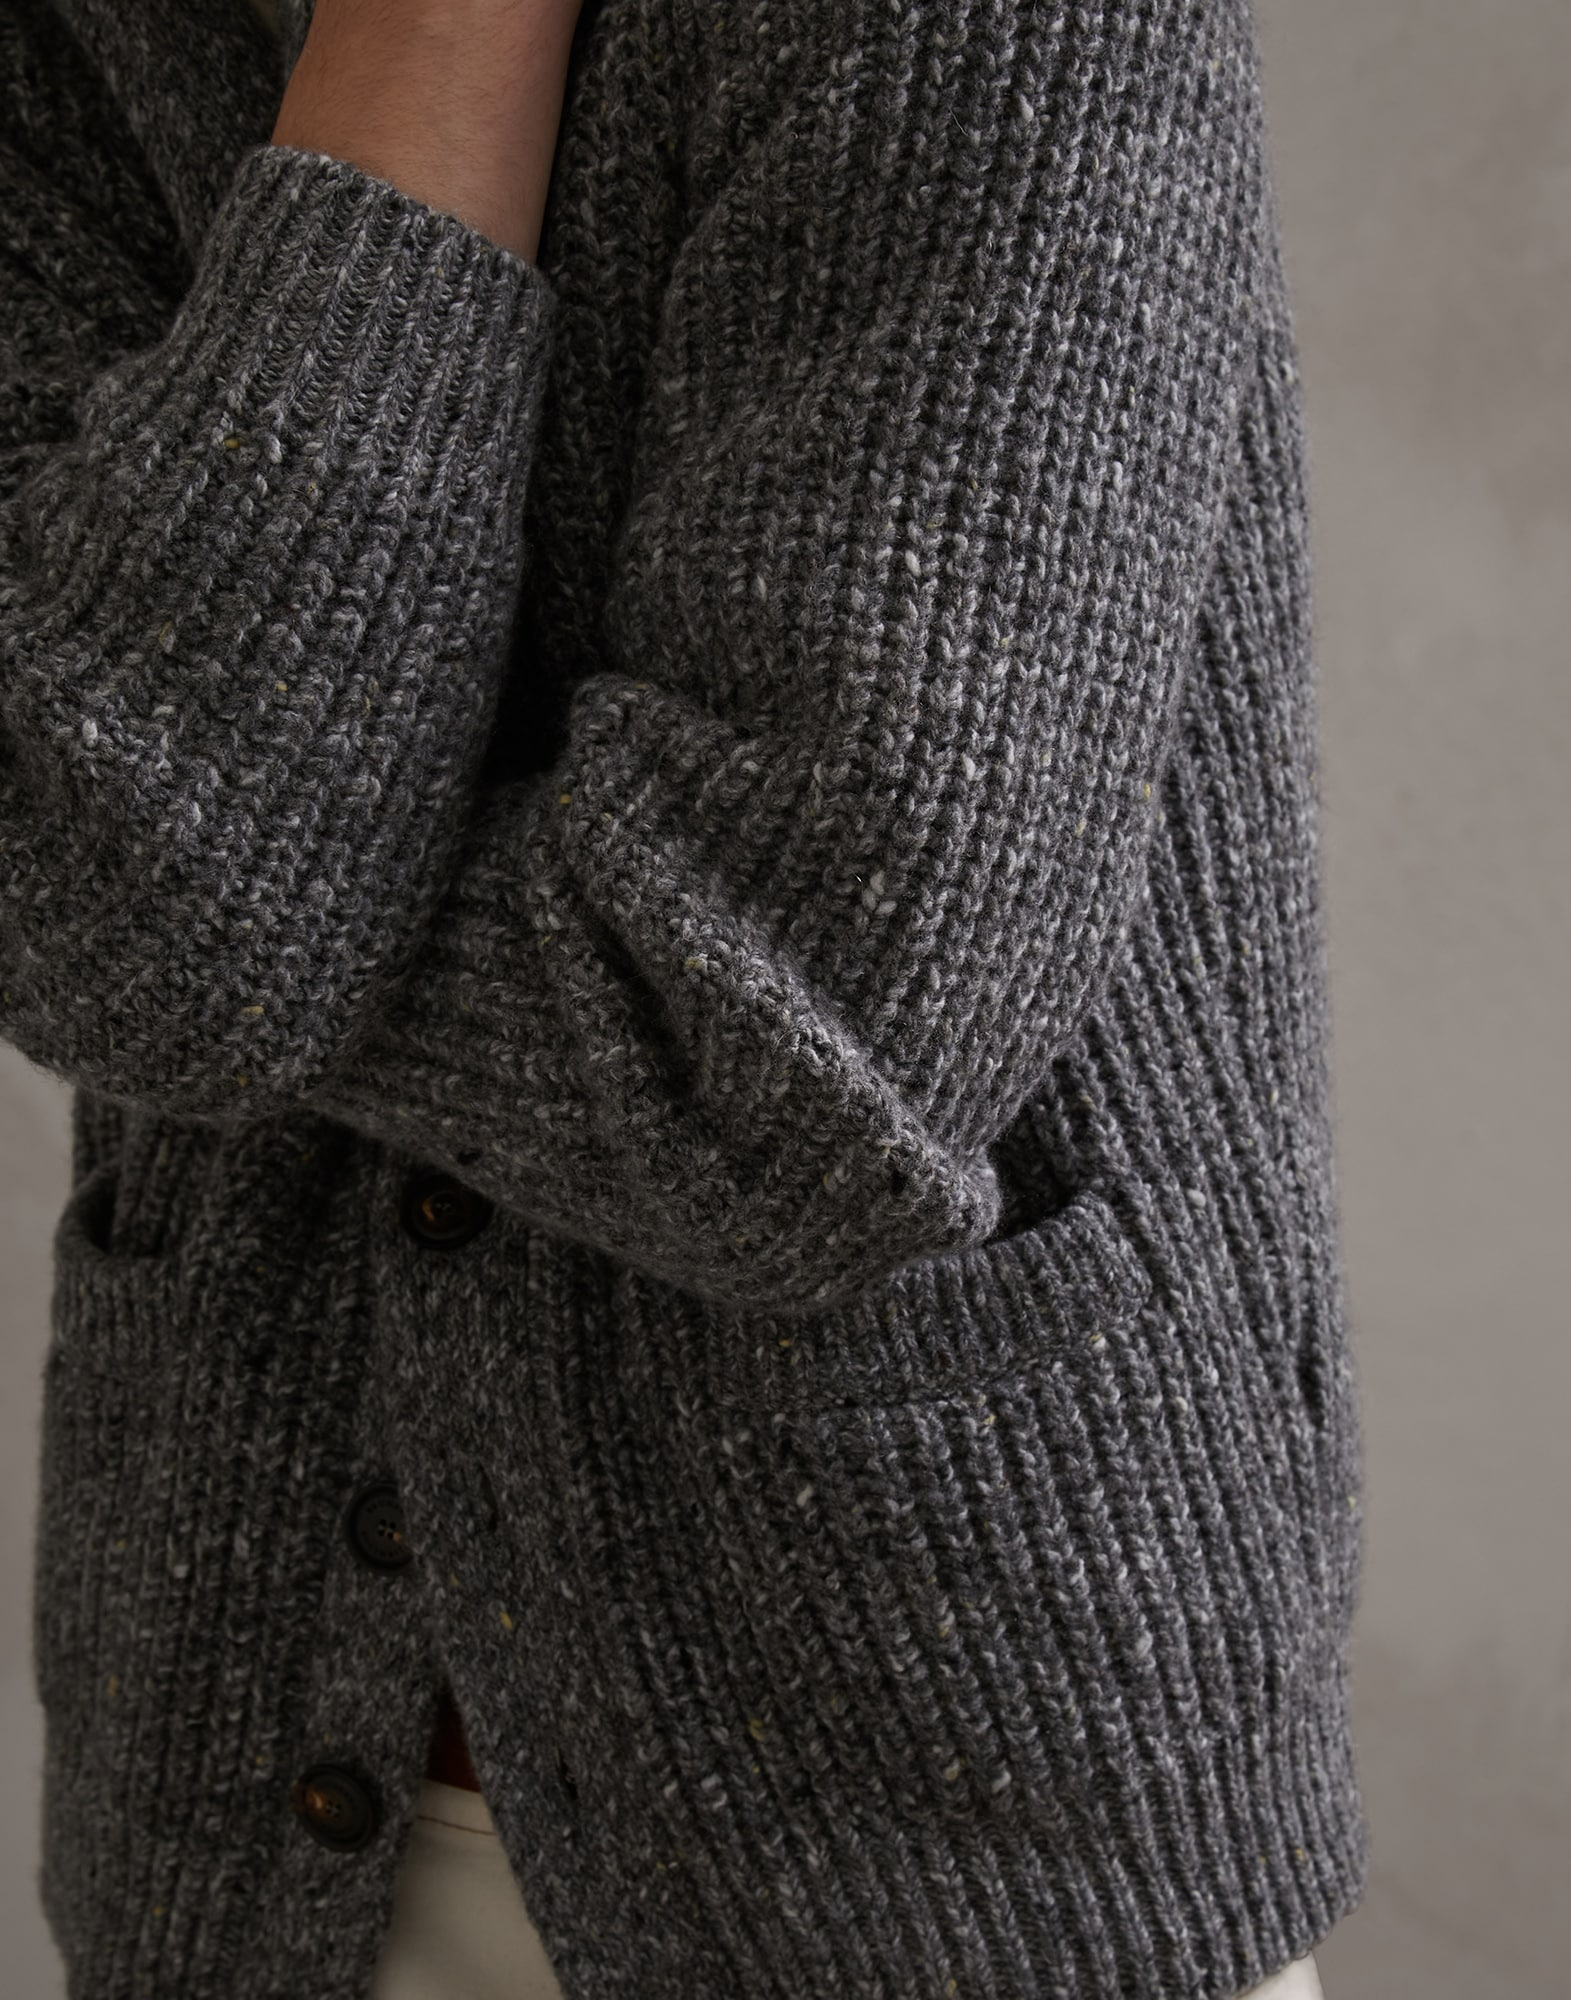 Button-front Cardigan - Detail